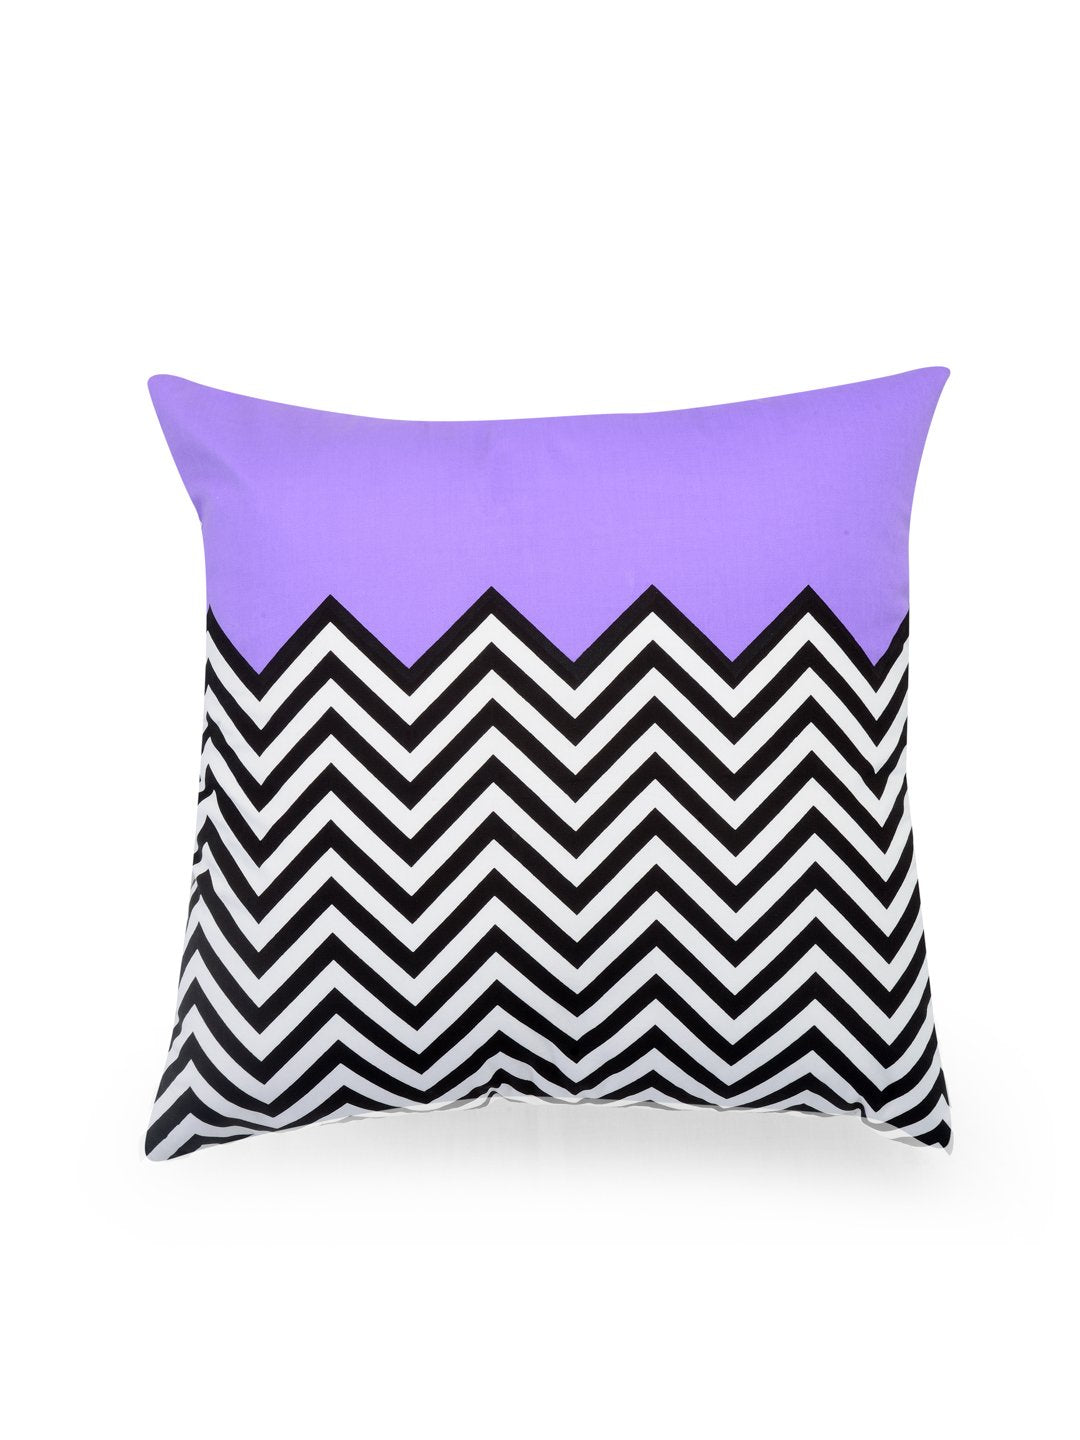 Hand-painted ZigZag Fest Delight Cushion Covers (Set of 5) - RANGRAGE - 6